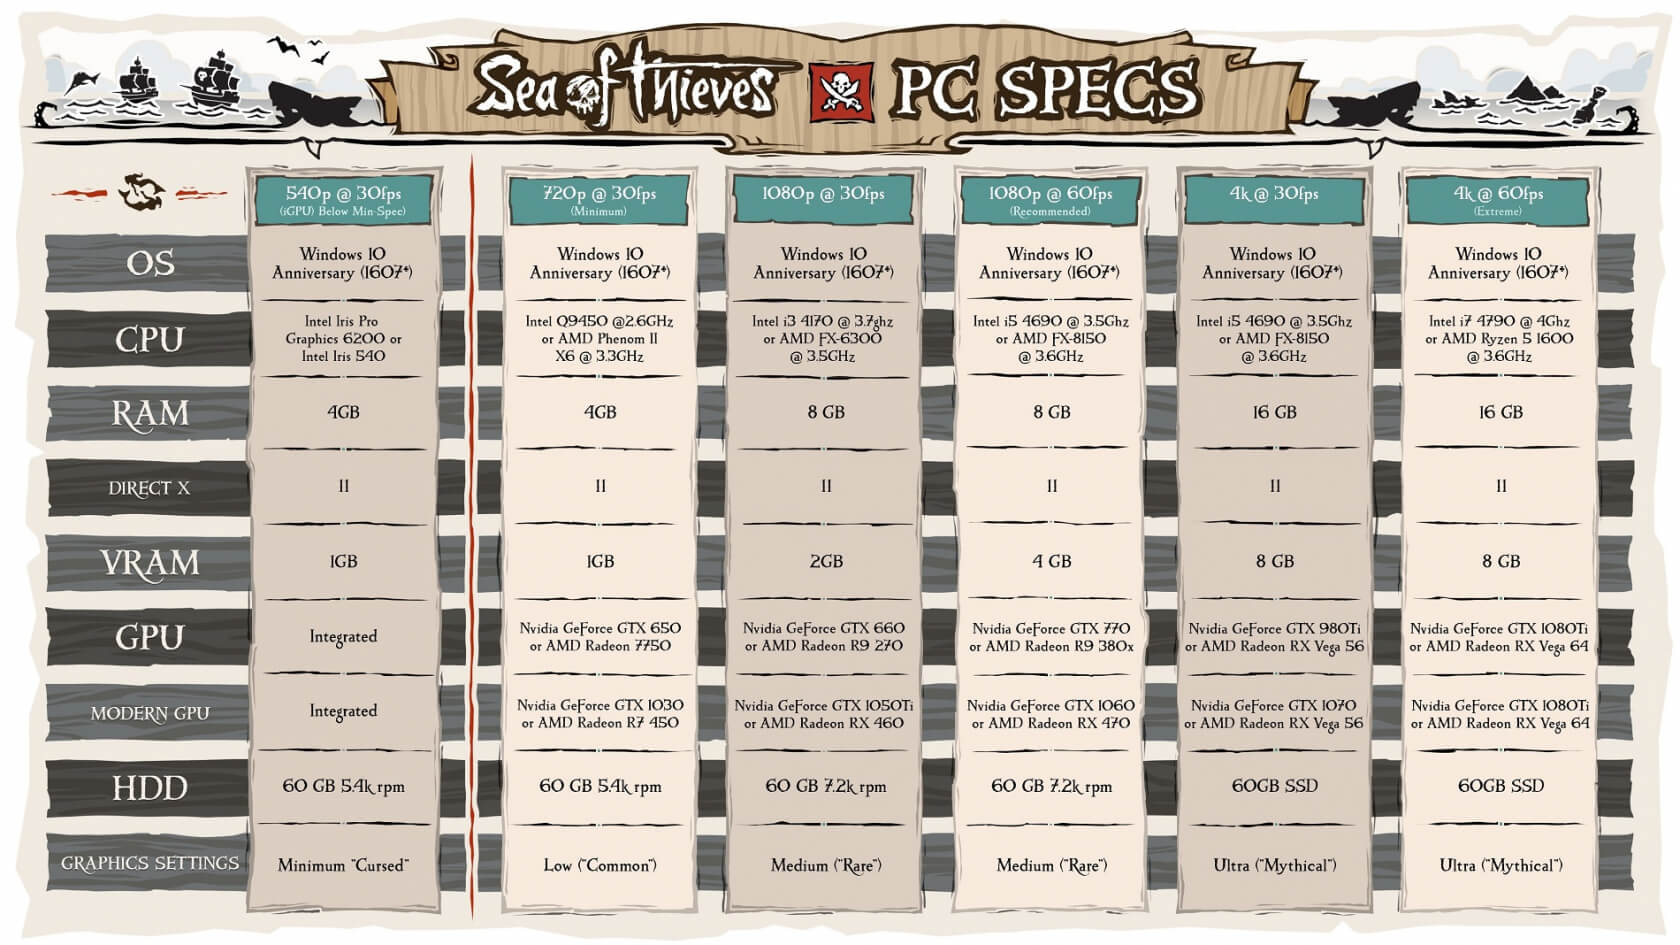 Sea of Thieves' PC specs show requirements for 540p @30 fps up to 4k